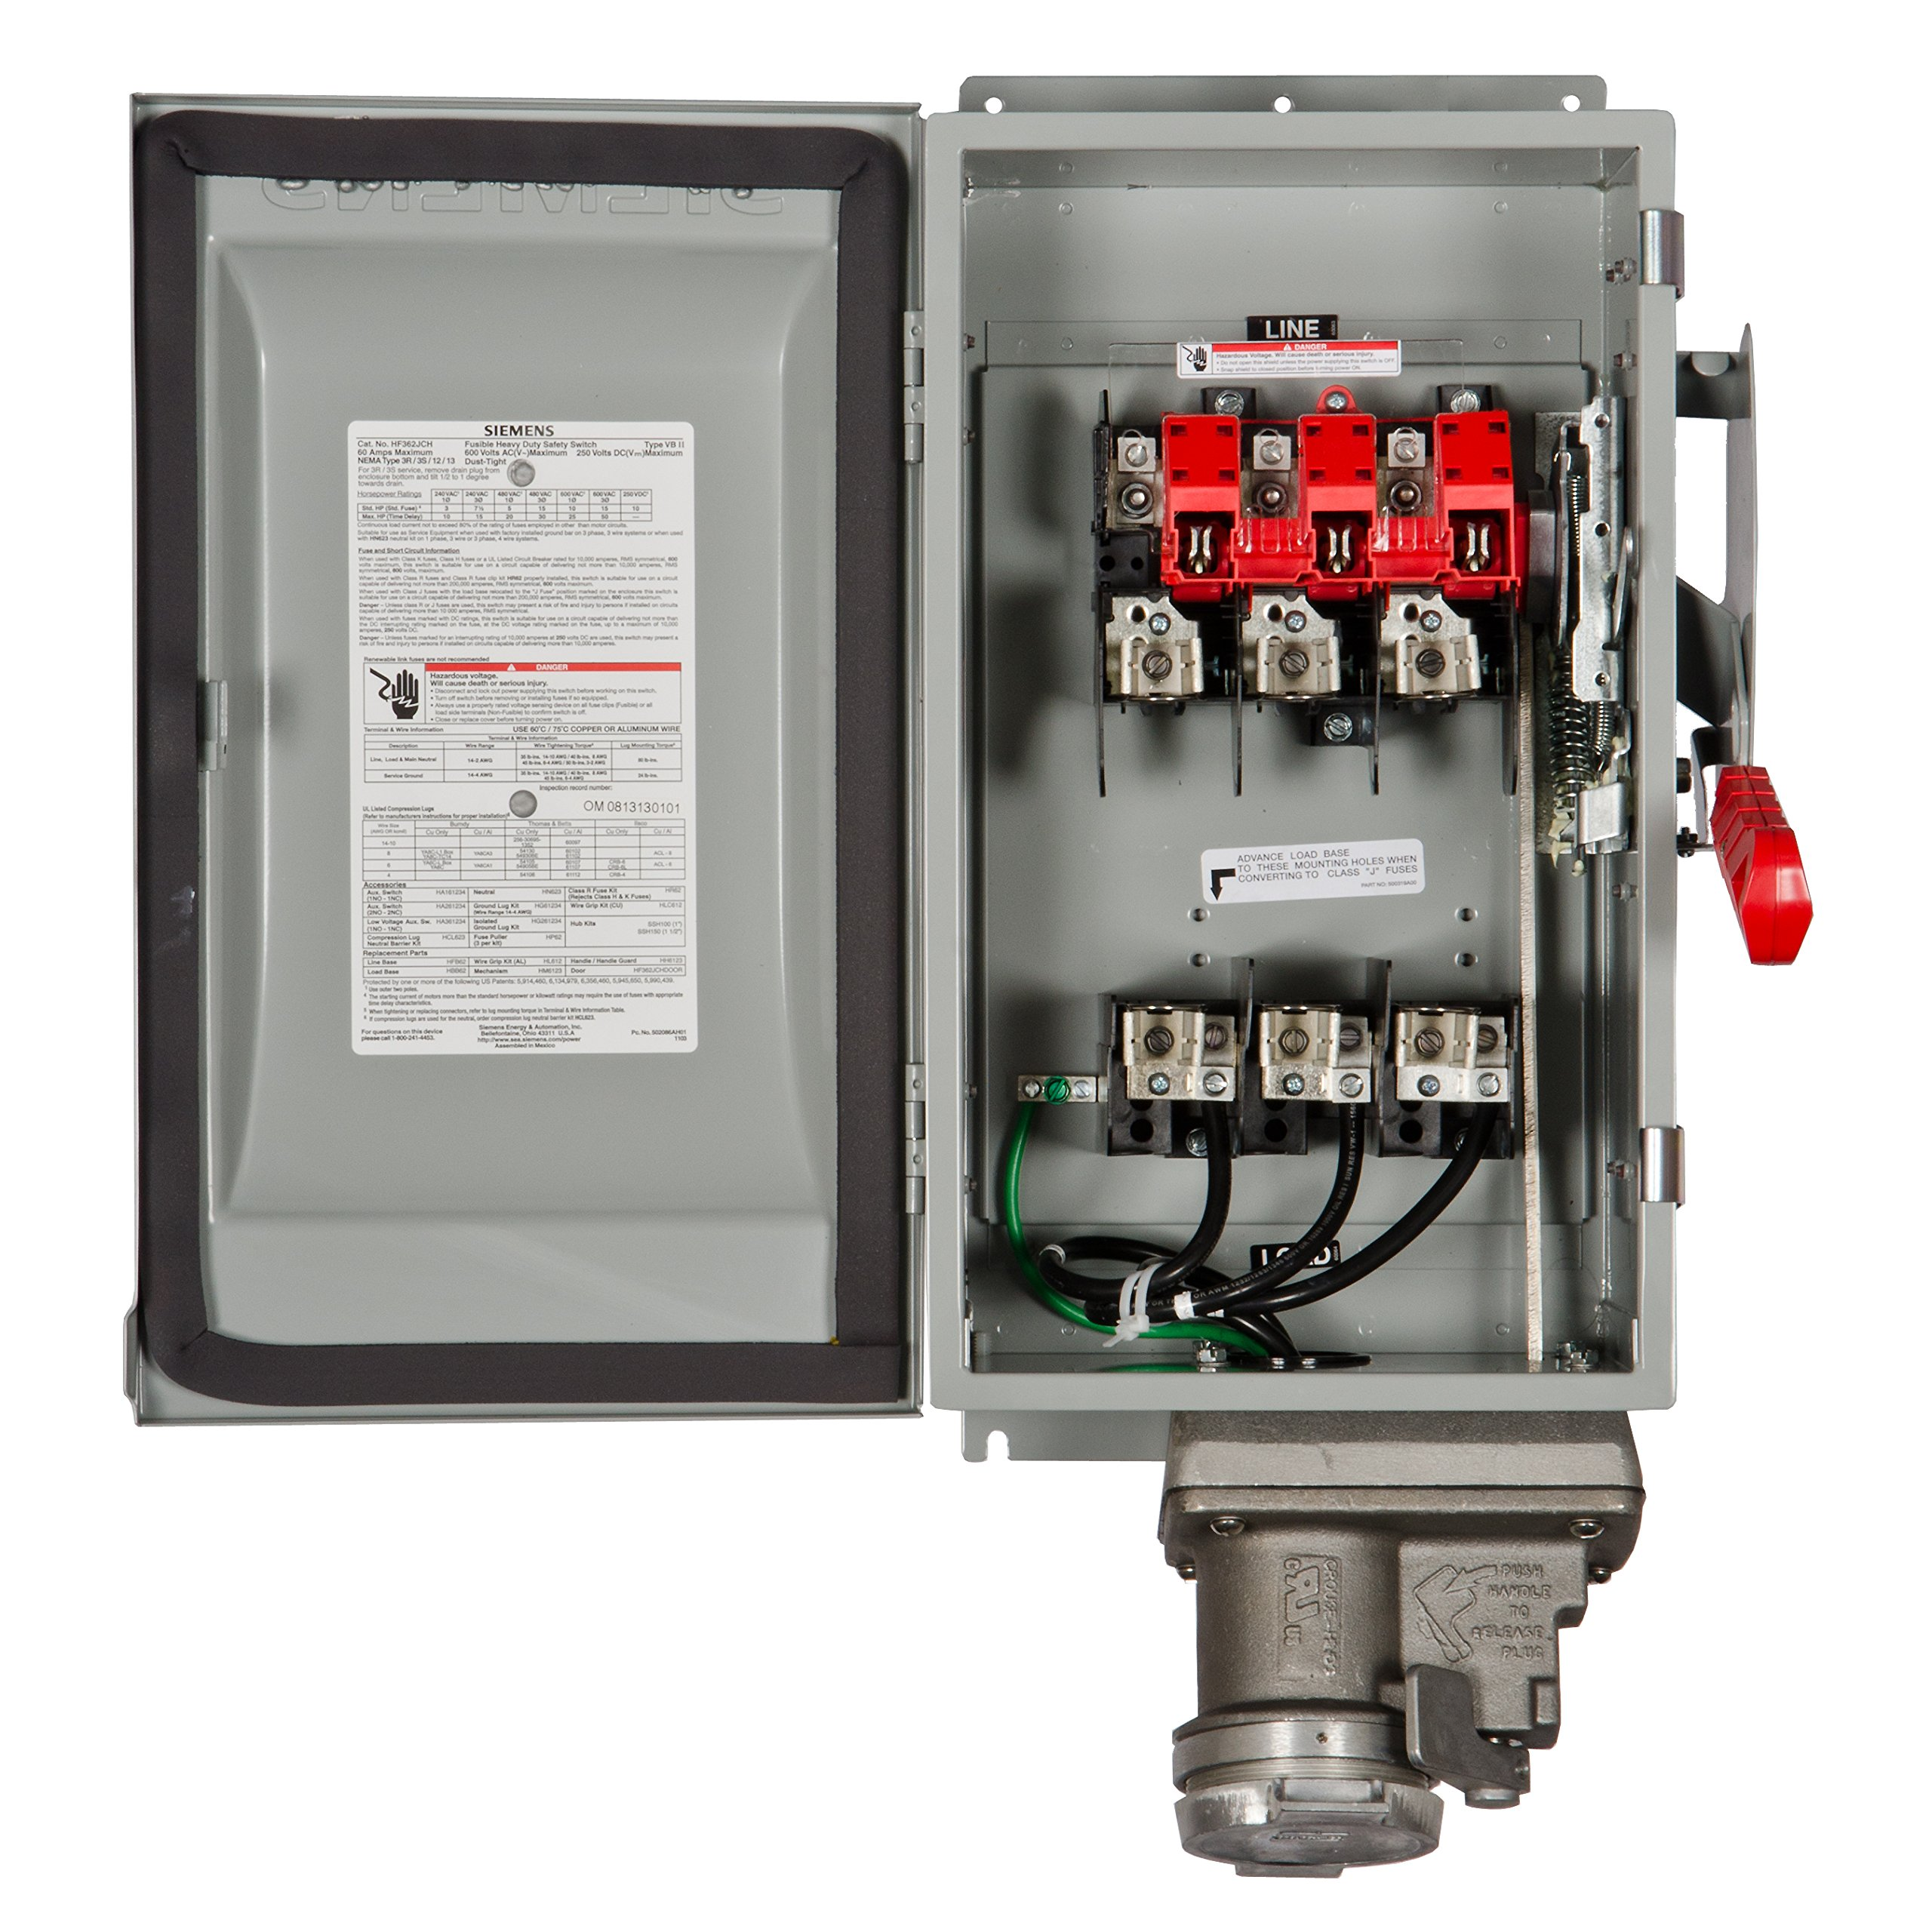 Siemens HF362JCH 60-Amp 3 Pole 600-volt Fused with Receptacle Safety Switches by SIEMENS (Image #2)